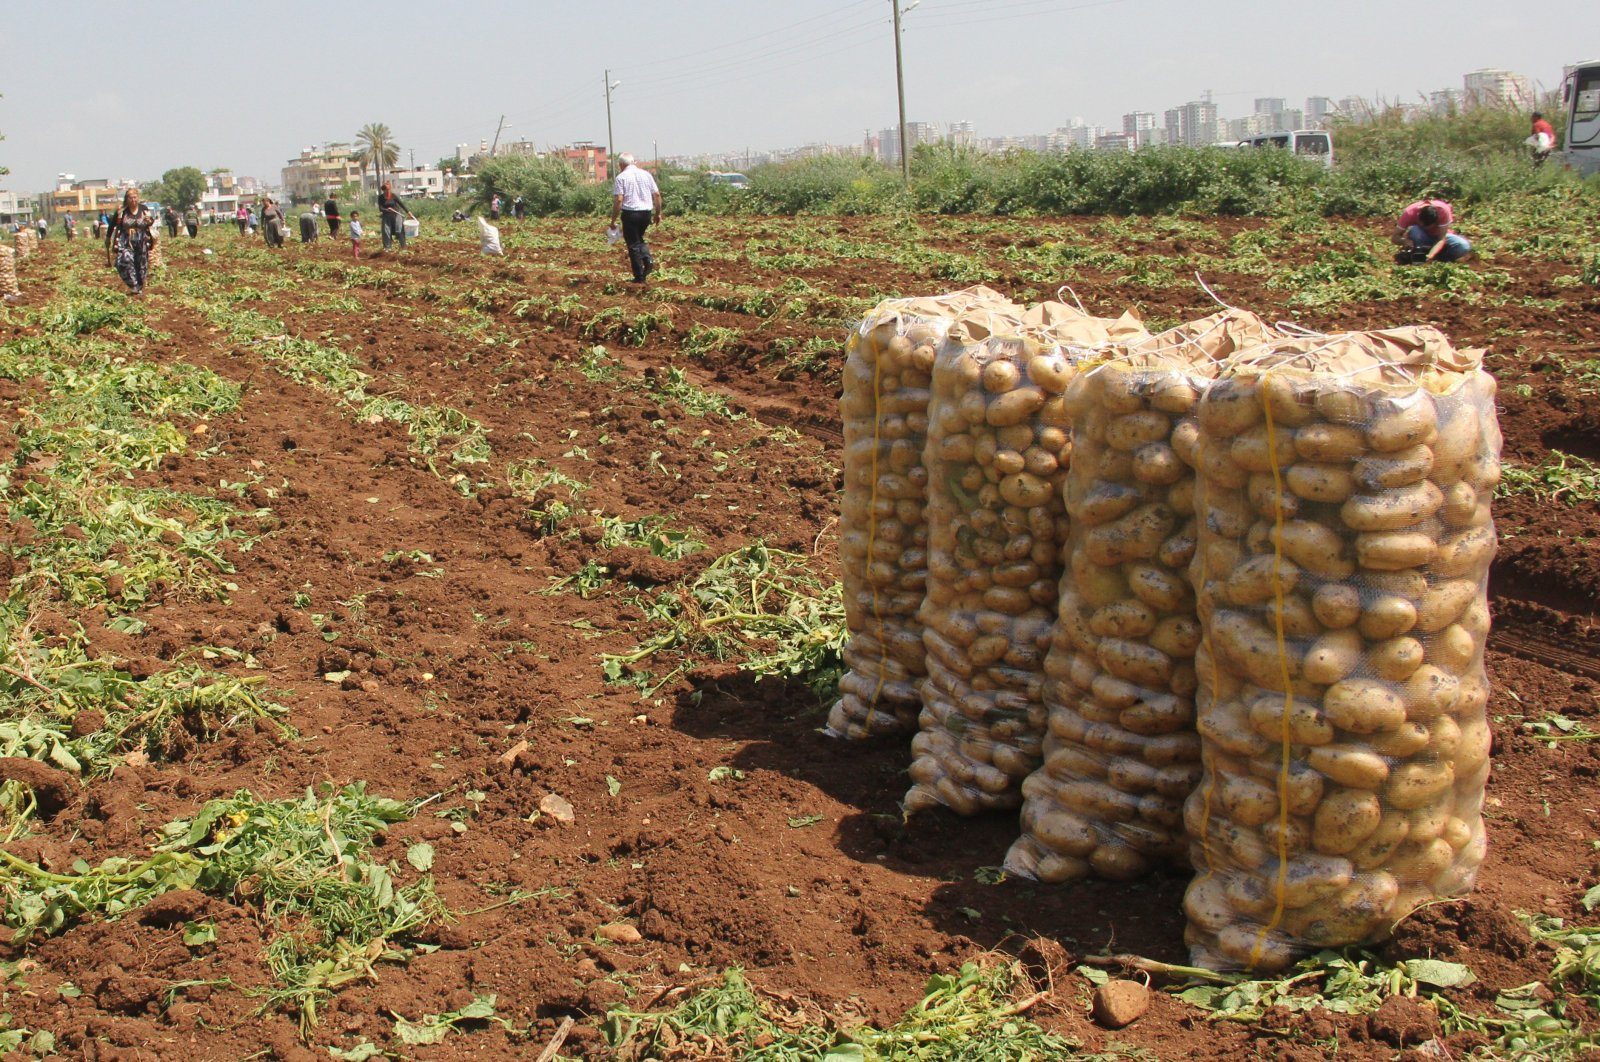 Safety measures at farms, greenhouses and gardens will be inspected by officials. (IHA Photo)